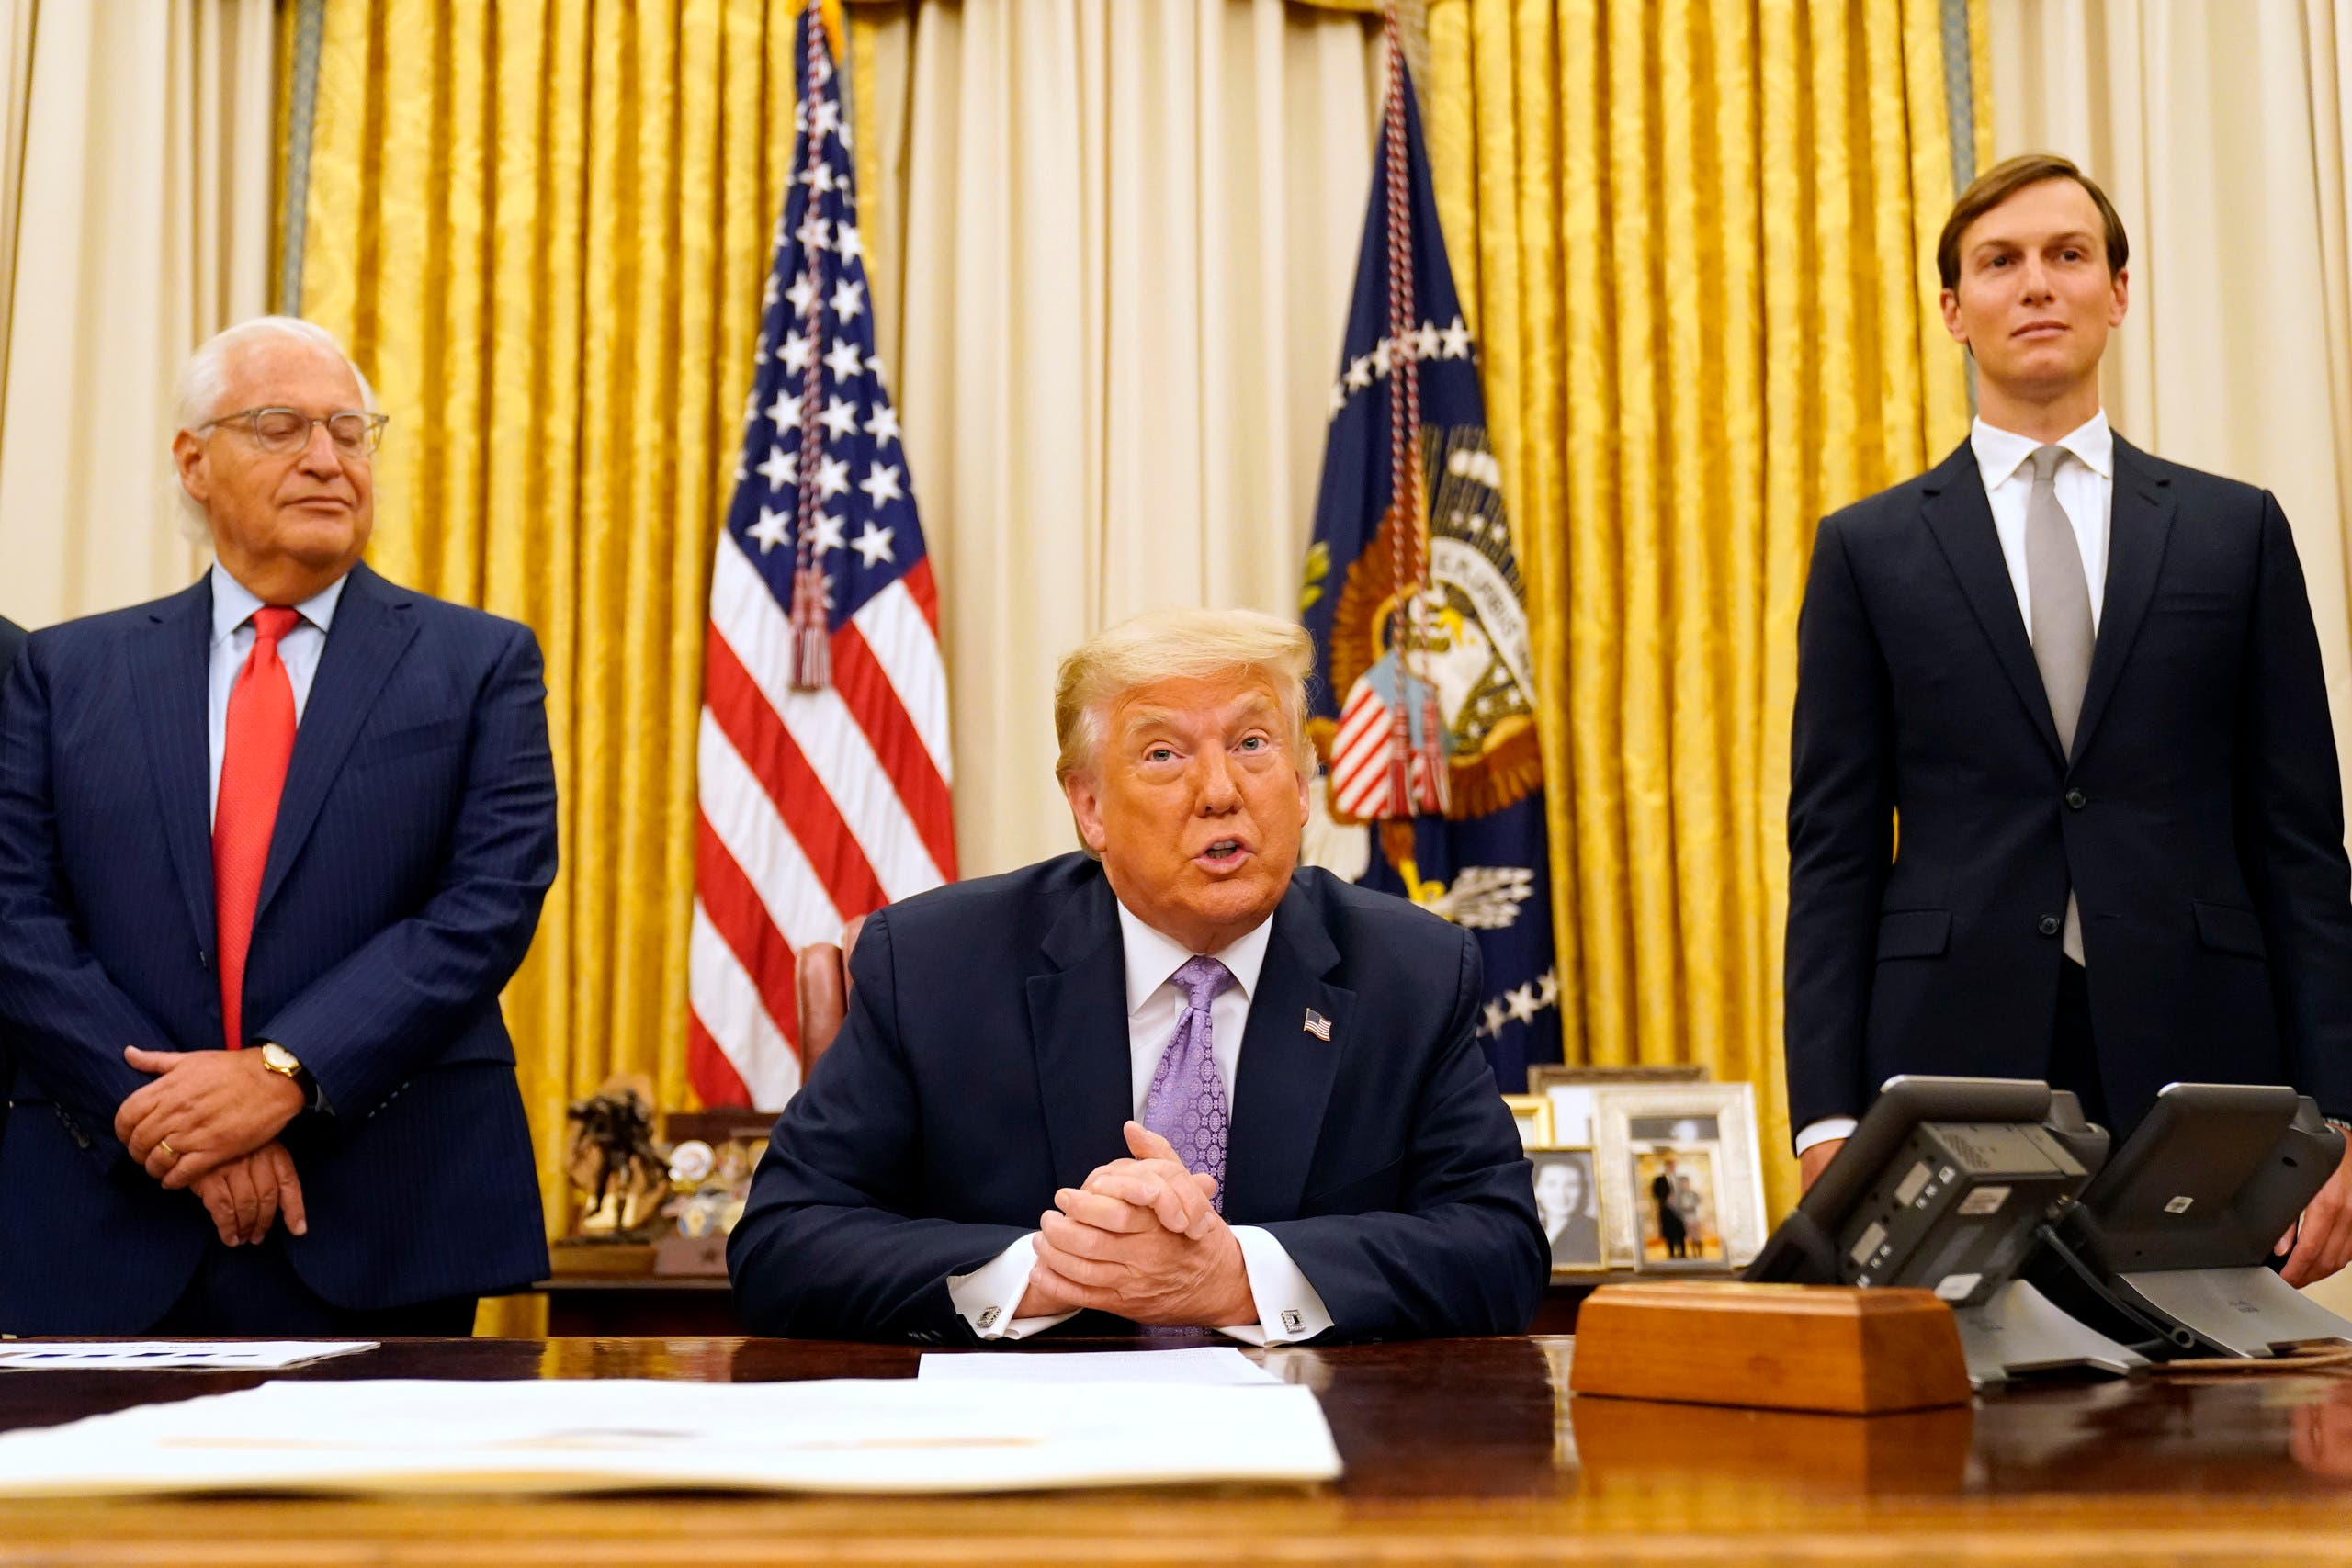 US President Donald Trump speaks in the Oval Office on Aug. 13, 2020, in Washington after announcing the UAE-Israel agreement. (AP)